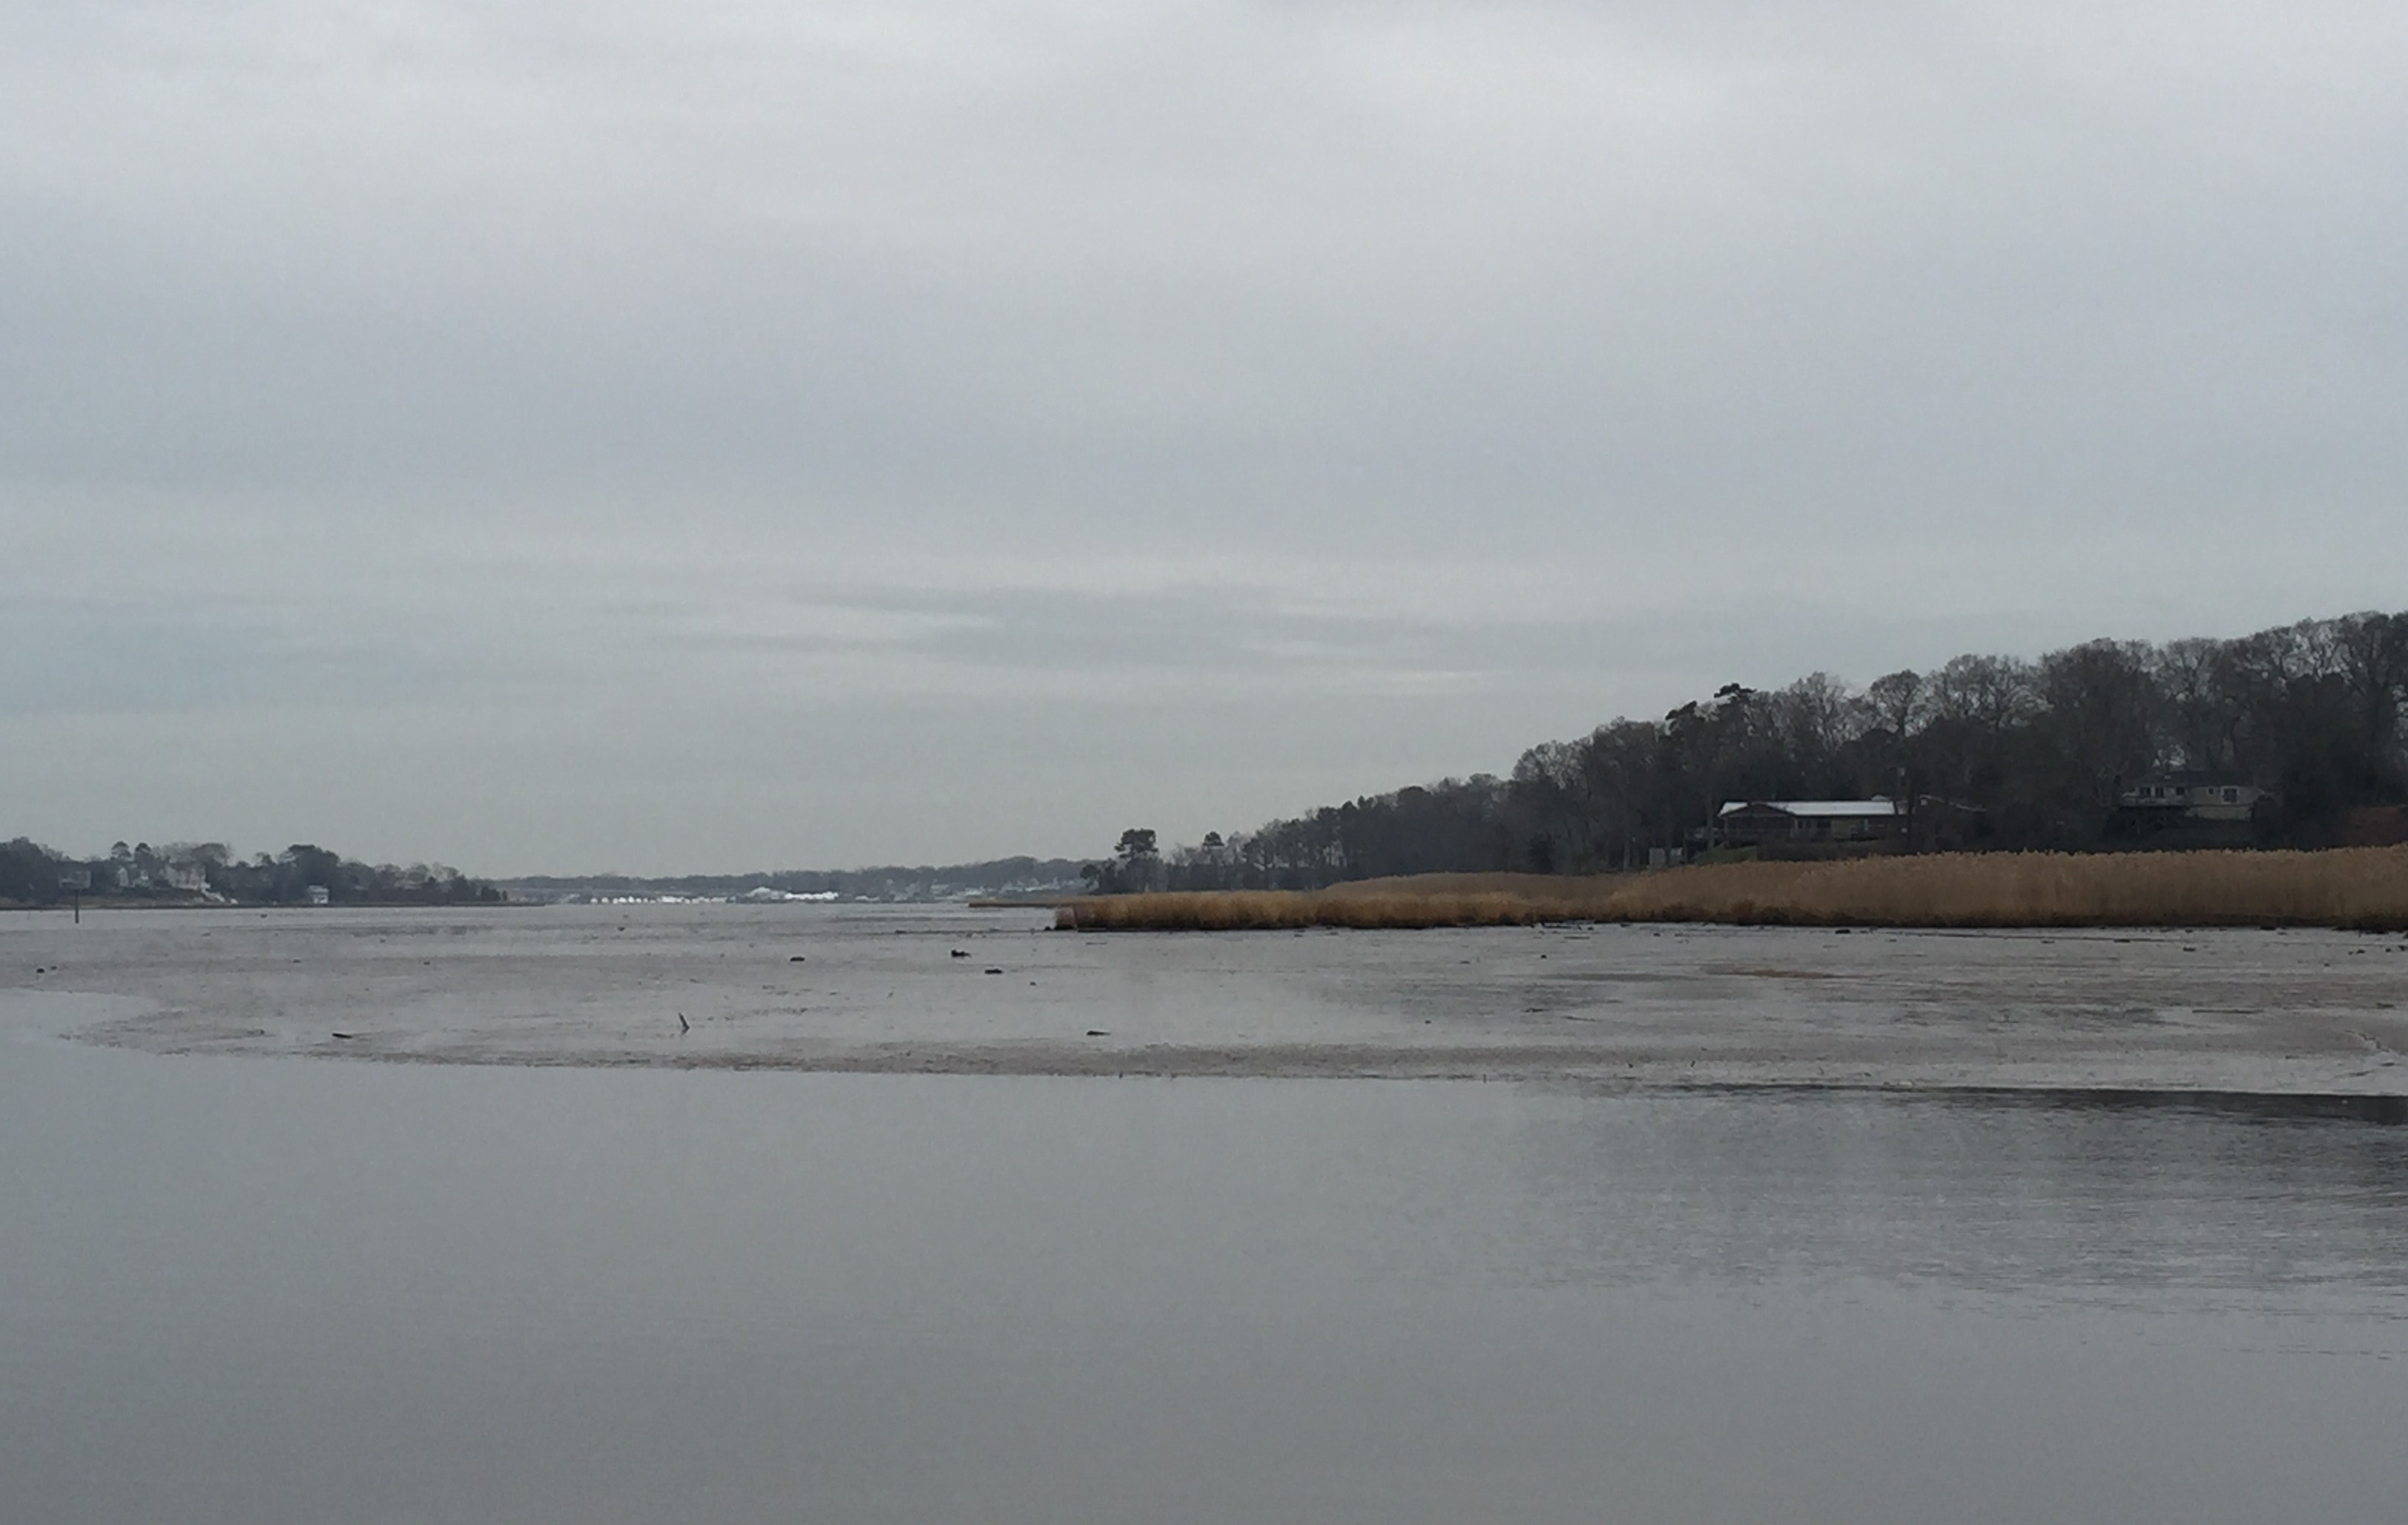 The Manasquan River, Dec. 22, 2014. (Photo: Daniel Nee)